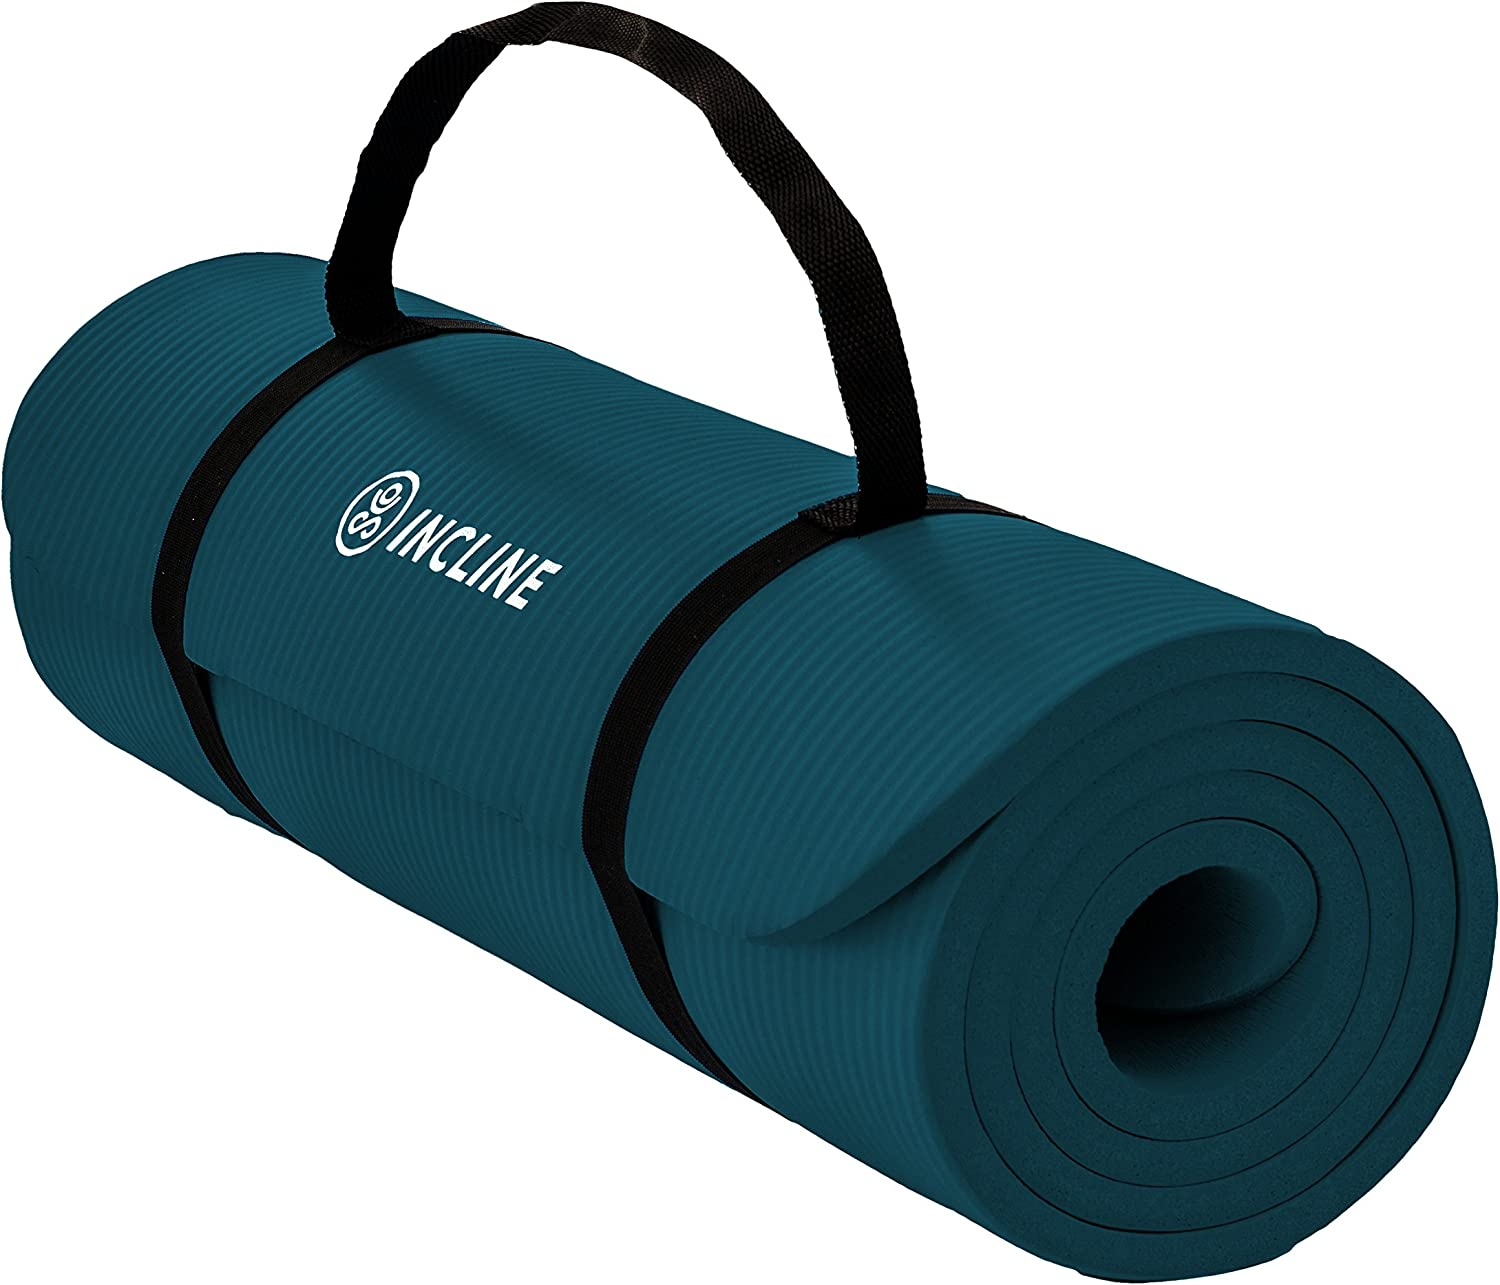 Incline Fit Extra Thick Exercise Mat w Carrying Strap – Non Slip Comfortable Workout Mat For Yoga, Pilates, Stretching, Meditation, Floor Fitness Exercises